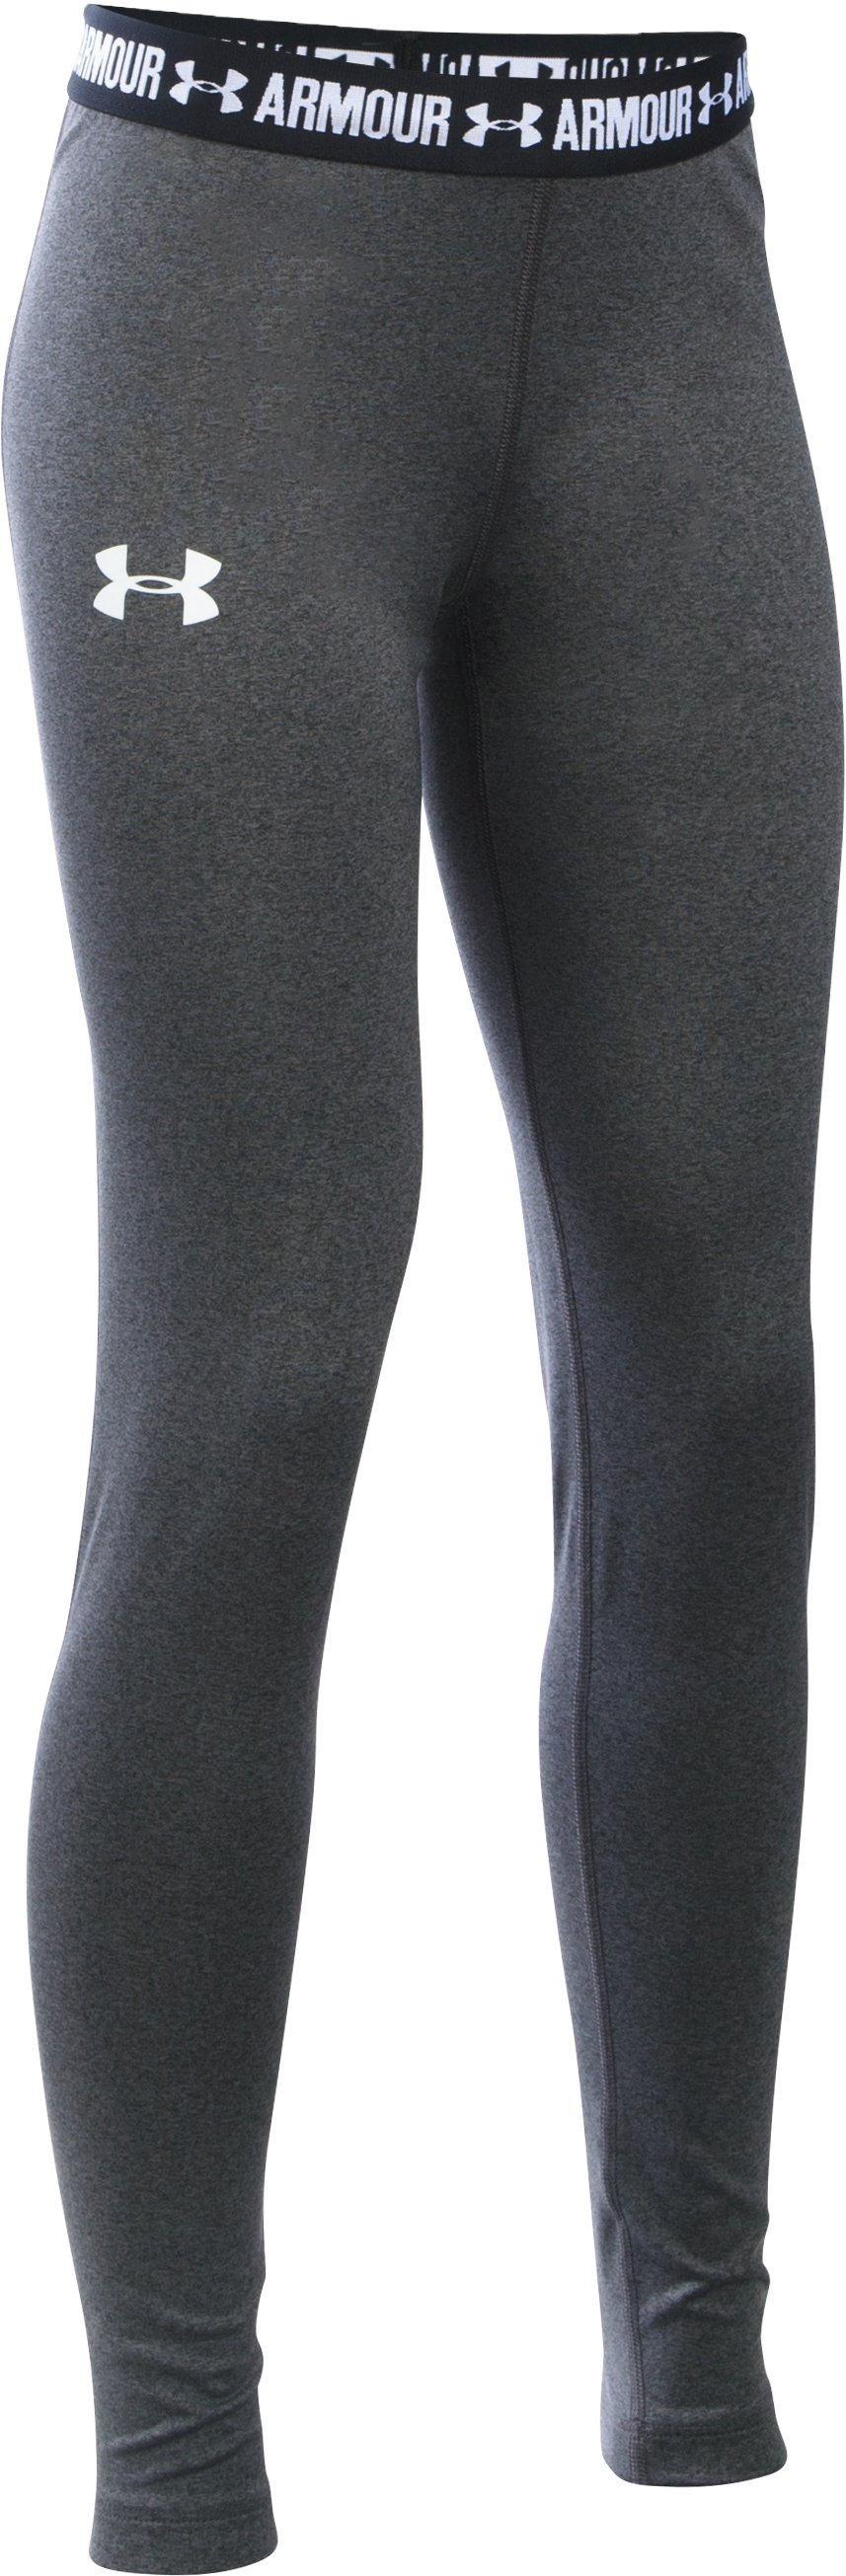 Girls' HeatGear® Armour Legging, Carbon Heather, zoomed image